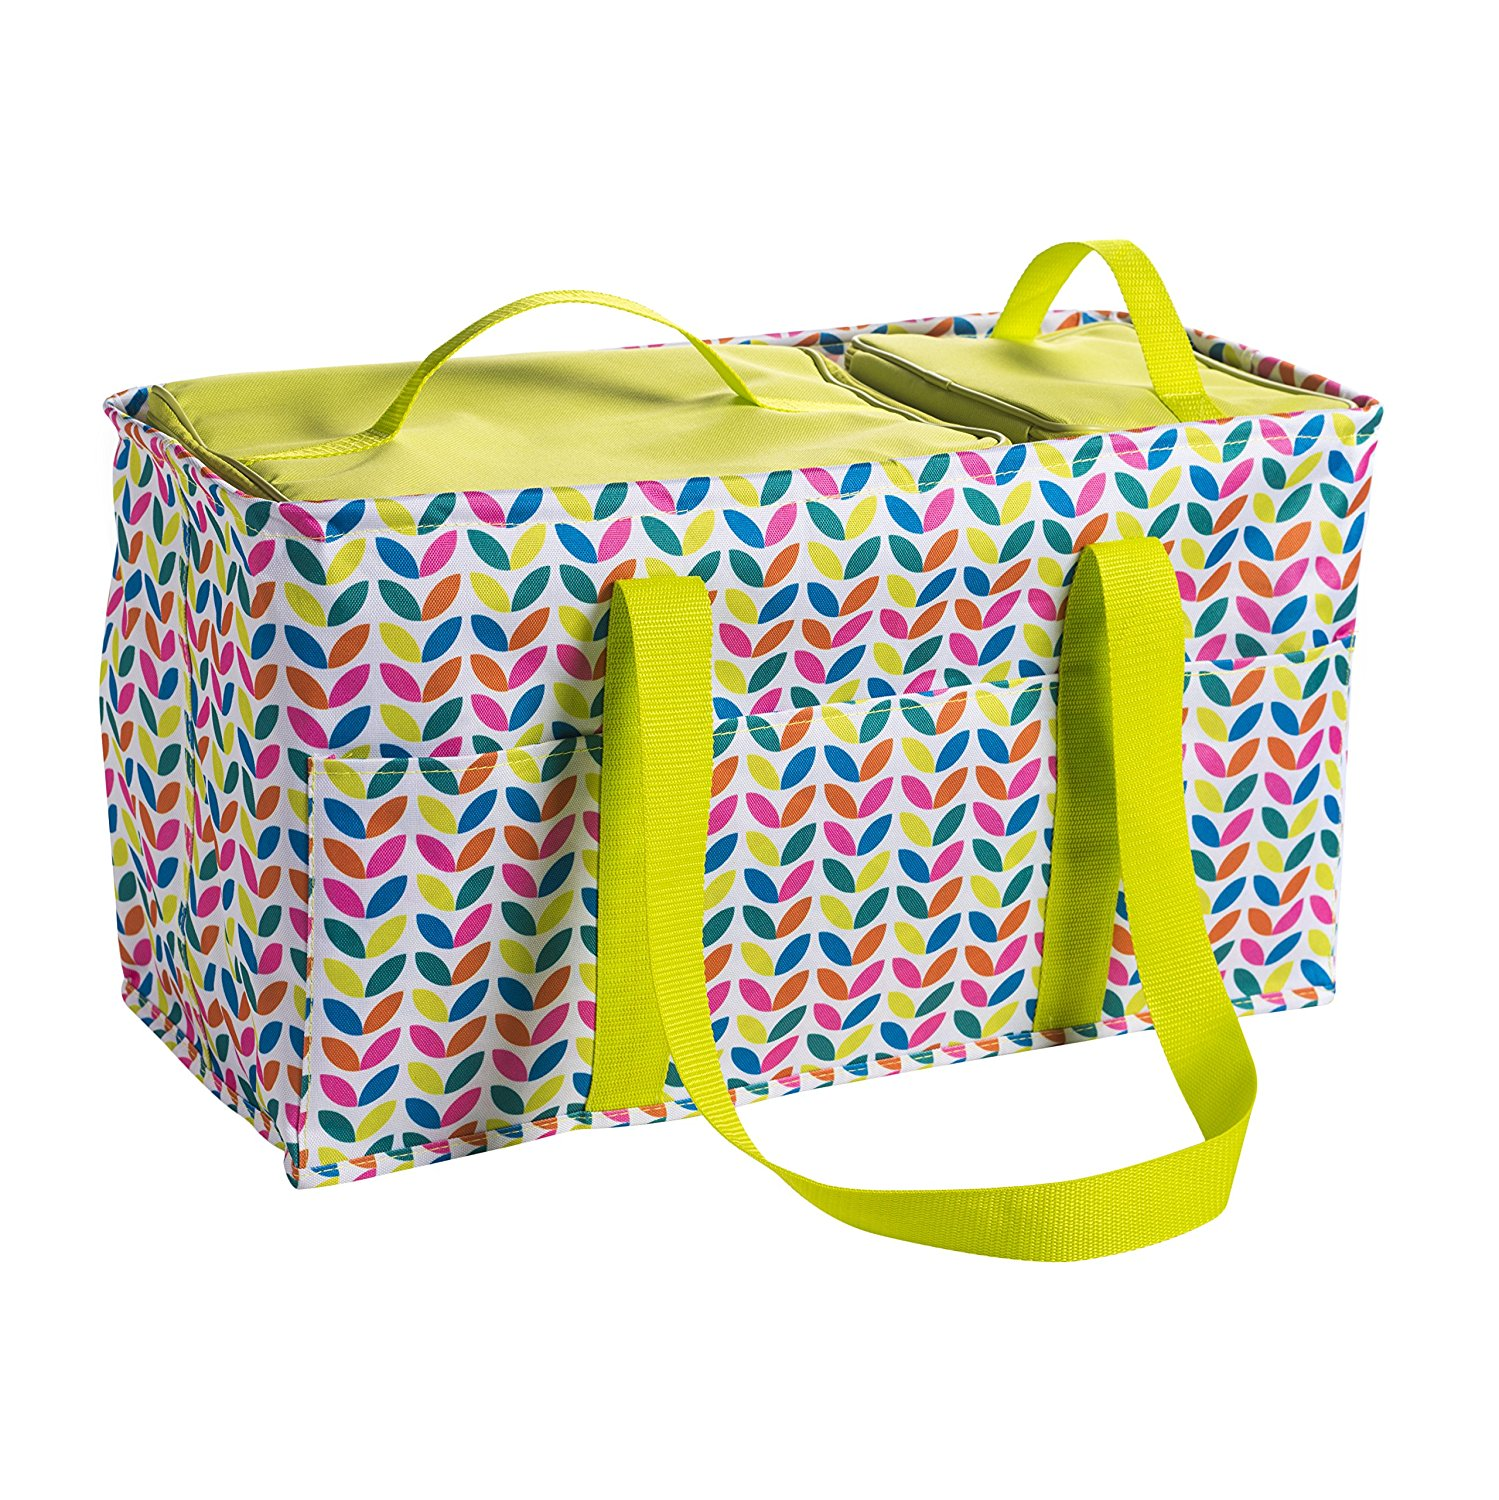 Pursetti Large Utility Tote Bag With Handles, 2 Zippered Coolers, Heavy Duty Fabric - Beach Picnic Basket, Collapsible Grocery Cart, Insulated Lunch Bag for Work, Car Trunk Organizer For Women(Leaves)